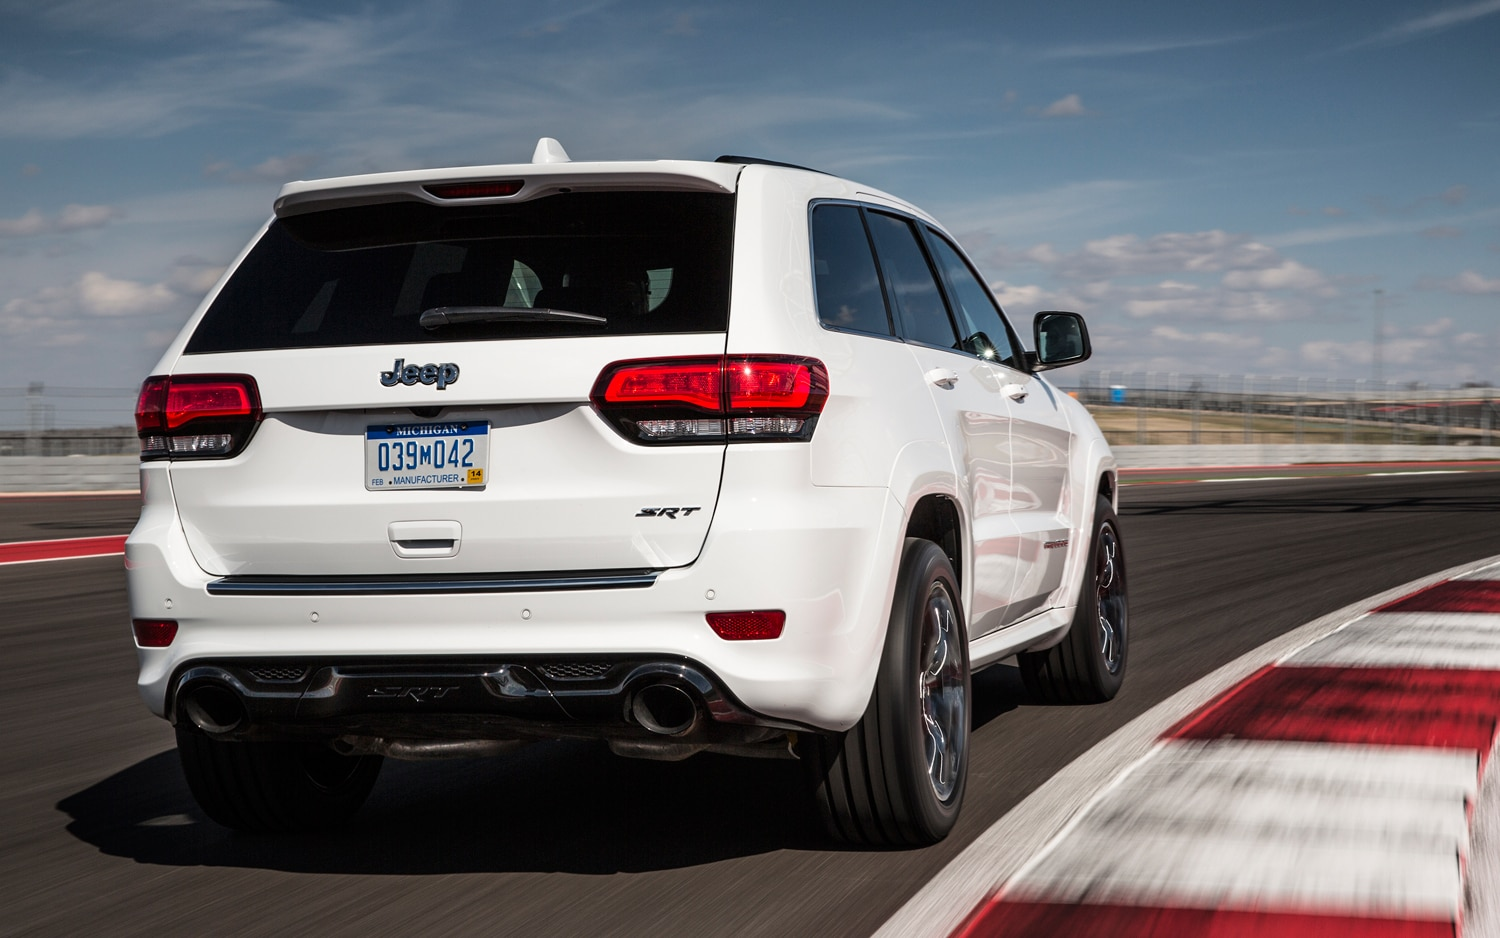 2014 Jeep Grand Cherokee SRT Front View In Motion 1